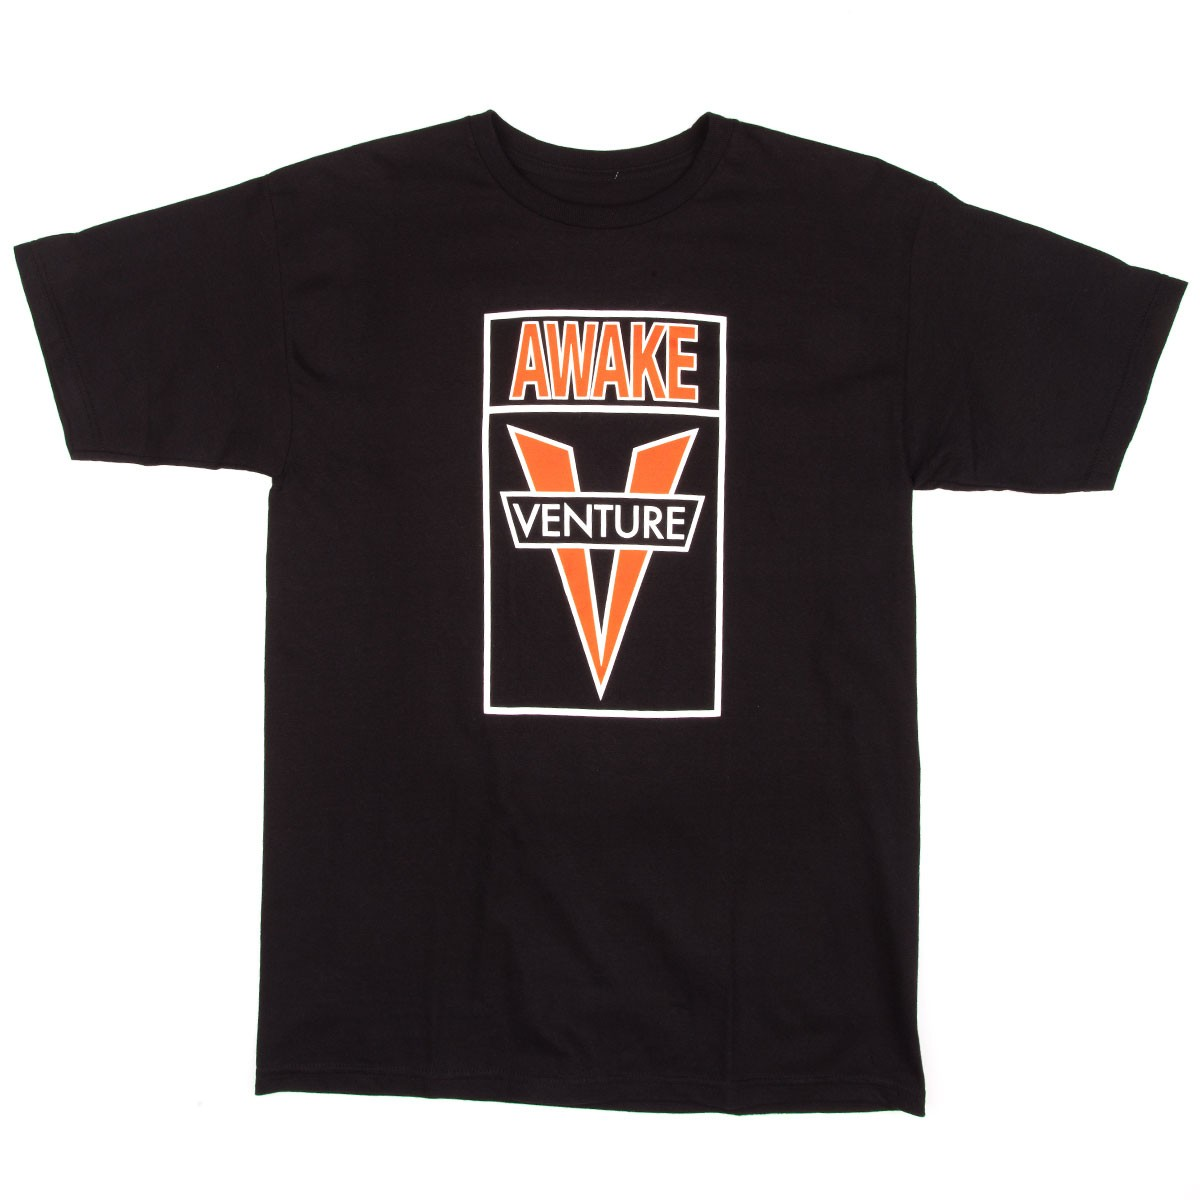 Venture OG Awake T-Shirt - Black/Red